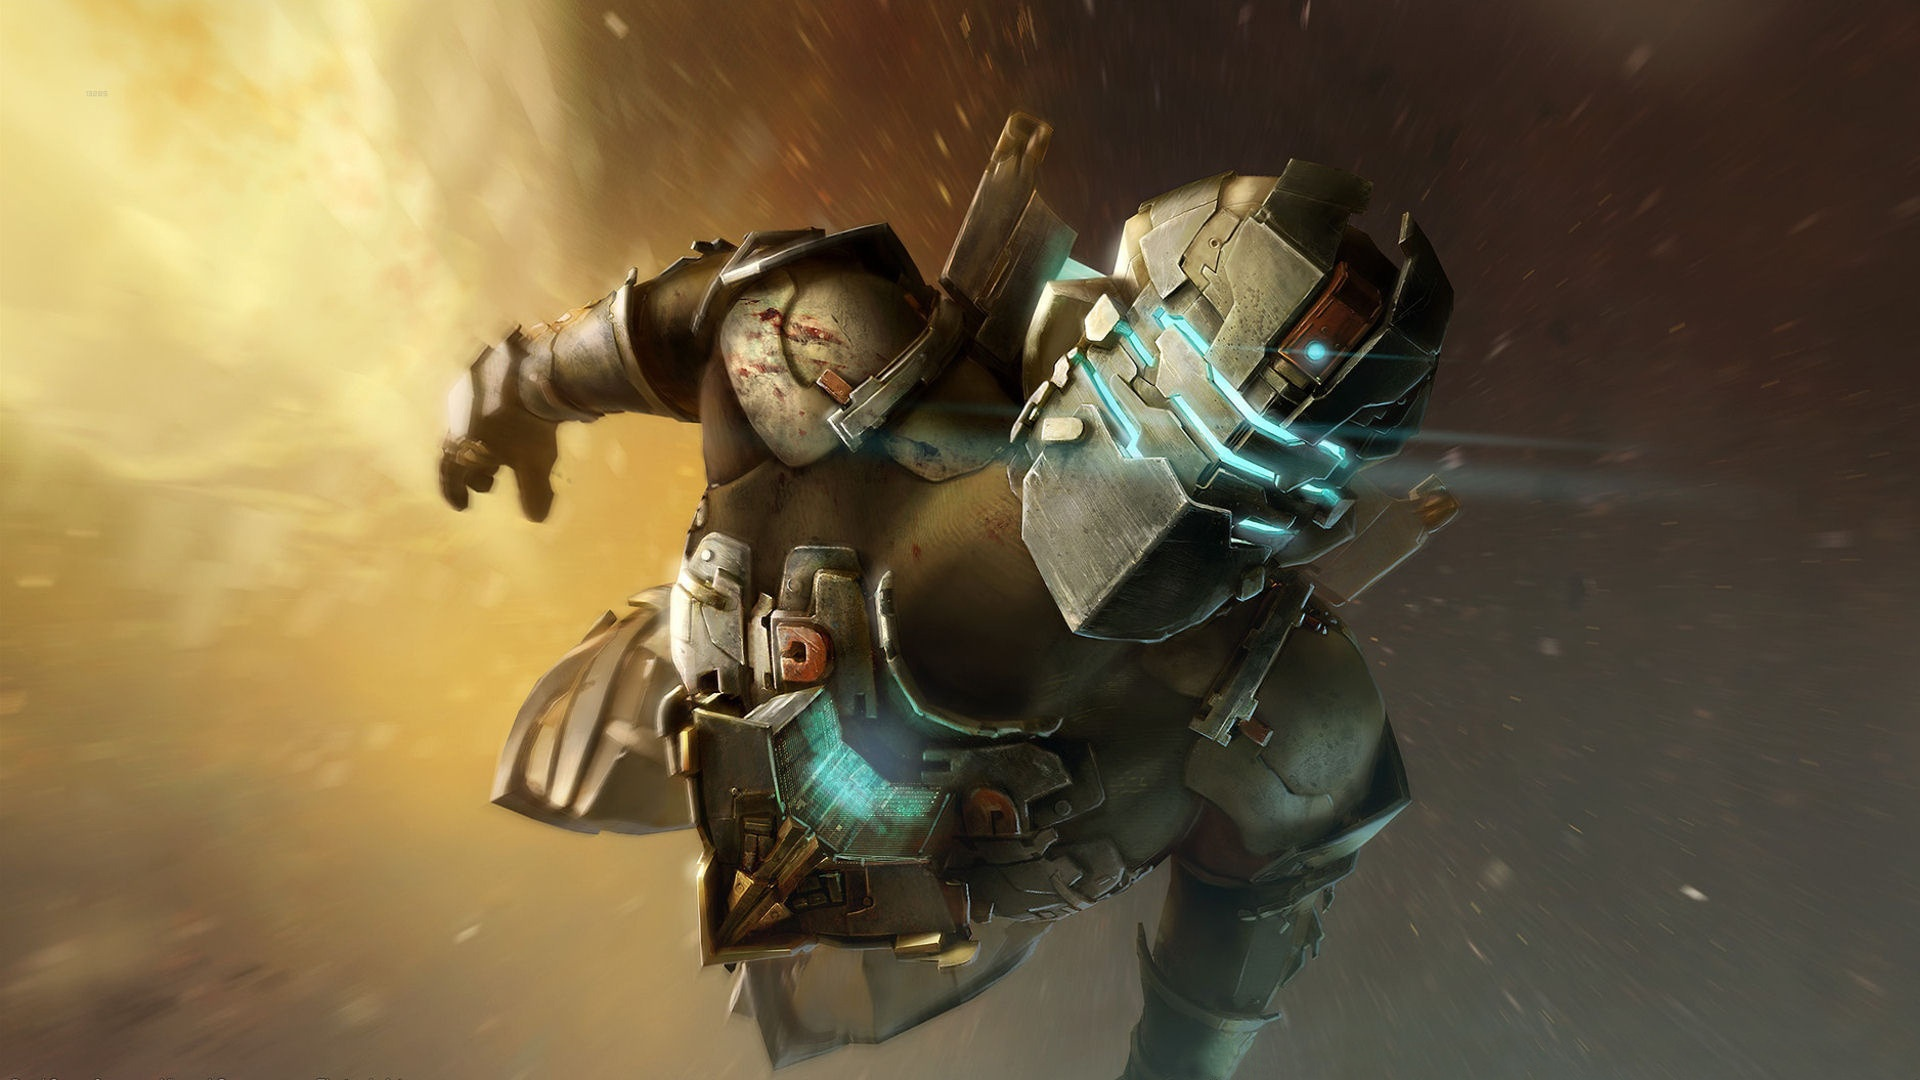 dead space 3 pc game free download full version